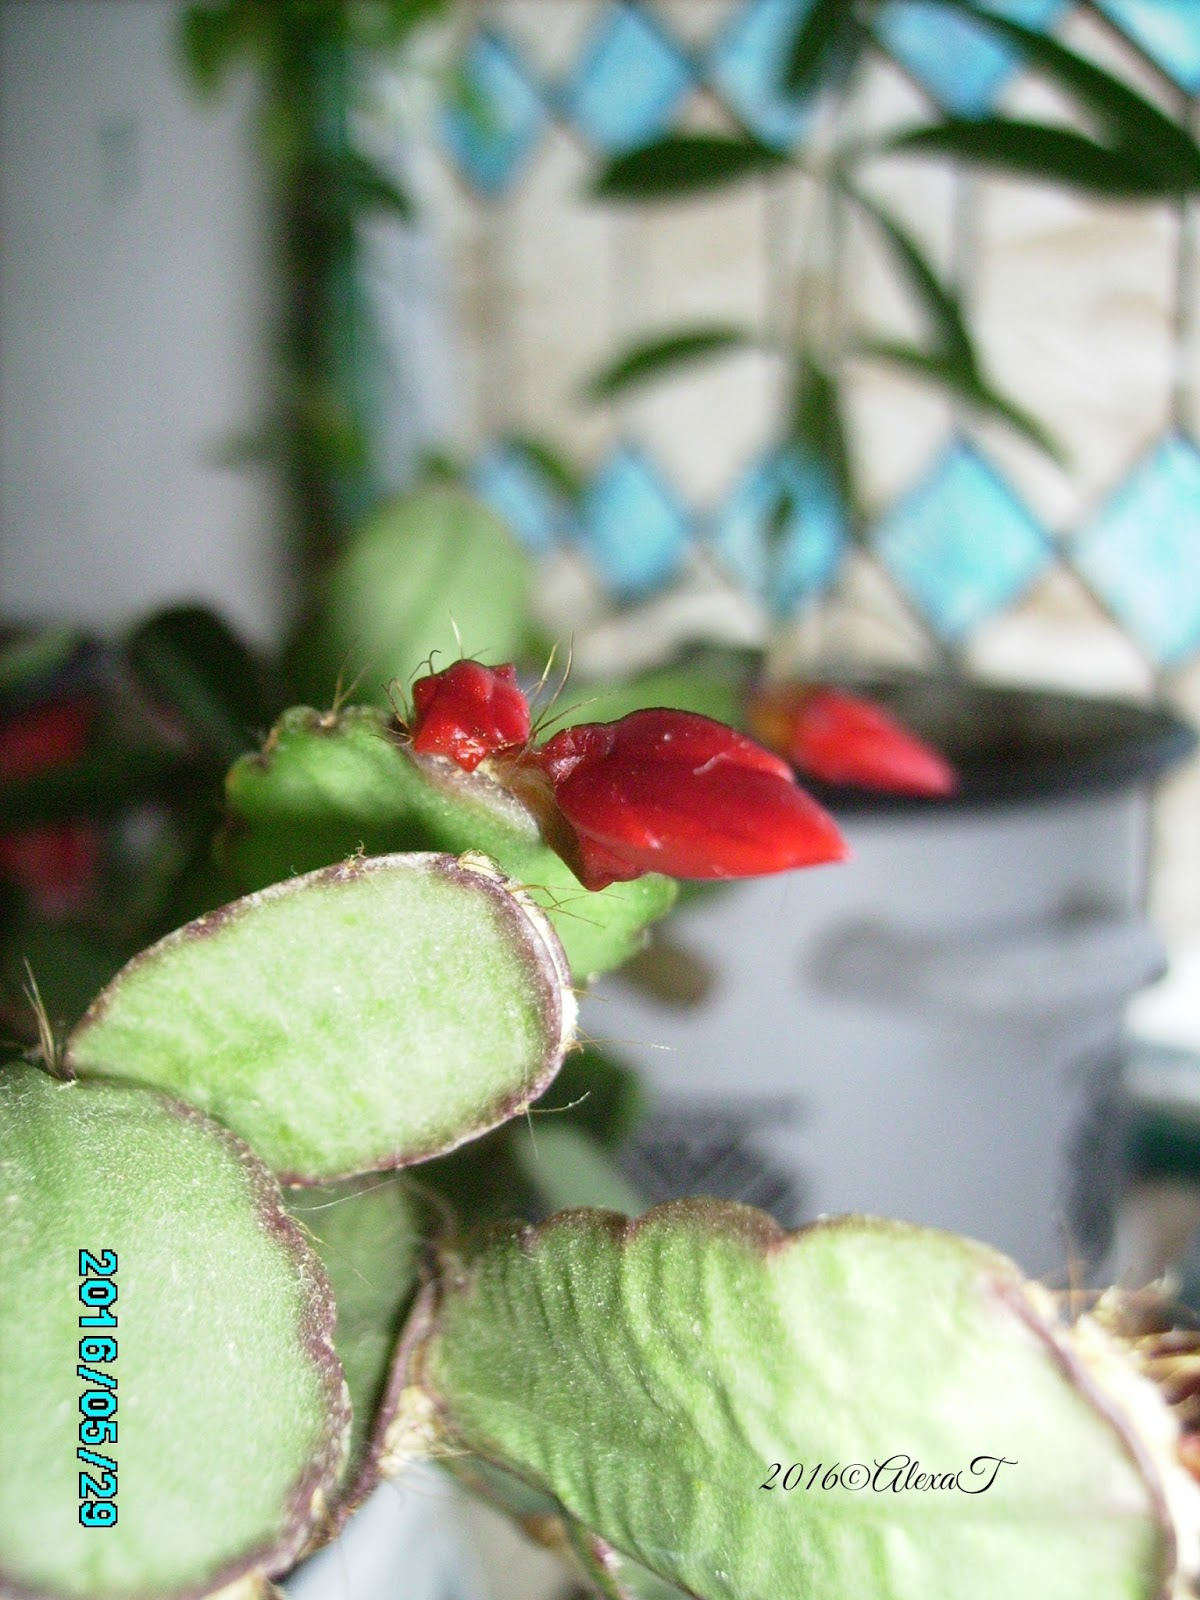 """Wikipedia about: """"Schlumbergera is a small genus of cacti with six species found in the coastal mountains of south-eastern Brazil. Plants grow on trees or rocks in habitats that are generally shady with high humidity, and can be quite different in appearance from their desert-dwelling cousins. Most species of Schlumbergera have stems which resemble leaf-like pads joined one to the other and flowers which appear from areoles at the joints and tips of the stems. Two species have cylindrical stems more similar to other cacti. In Brazil, the genus is referred to as Flor de Maio (May flower), reflecting the period in which they flower in the Southern Hemisphere."""""""